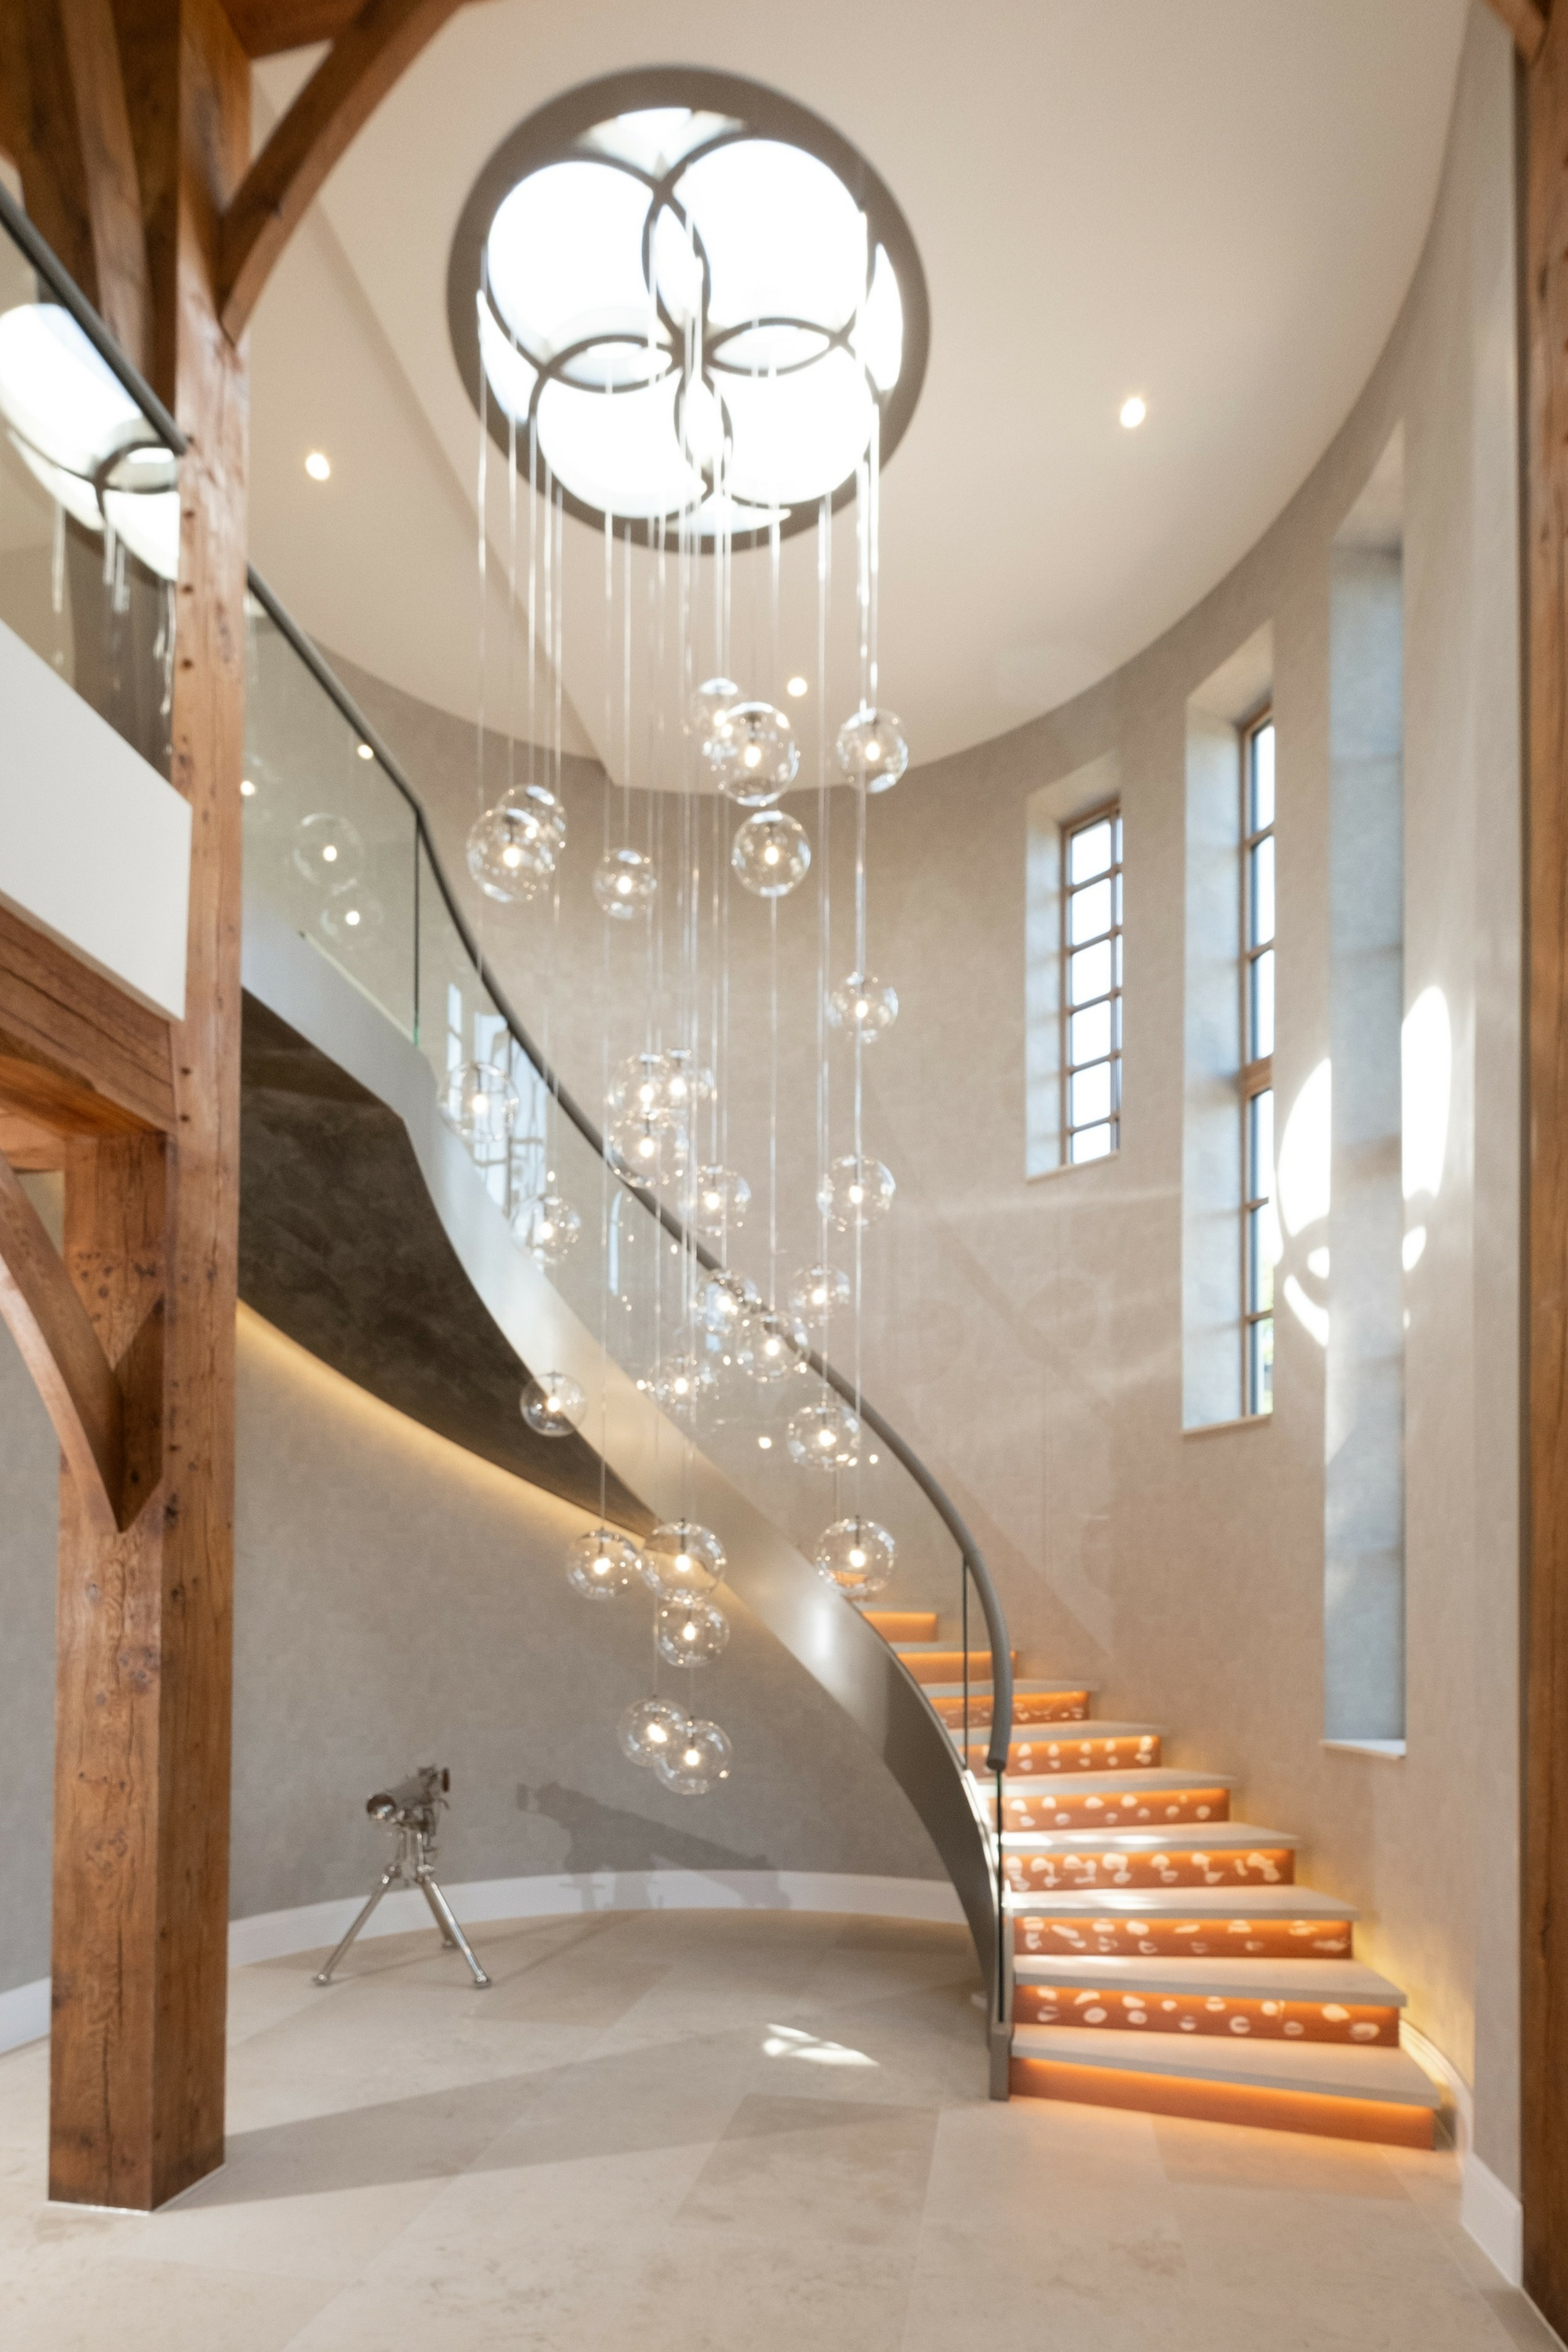 Curved Staircases Uk Spiral Uk | Curved Staircase Design Plans | Slightly Curved | Stainless Steel | Wood | House | Curved Stairway